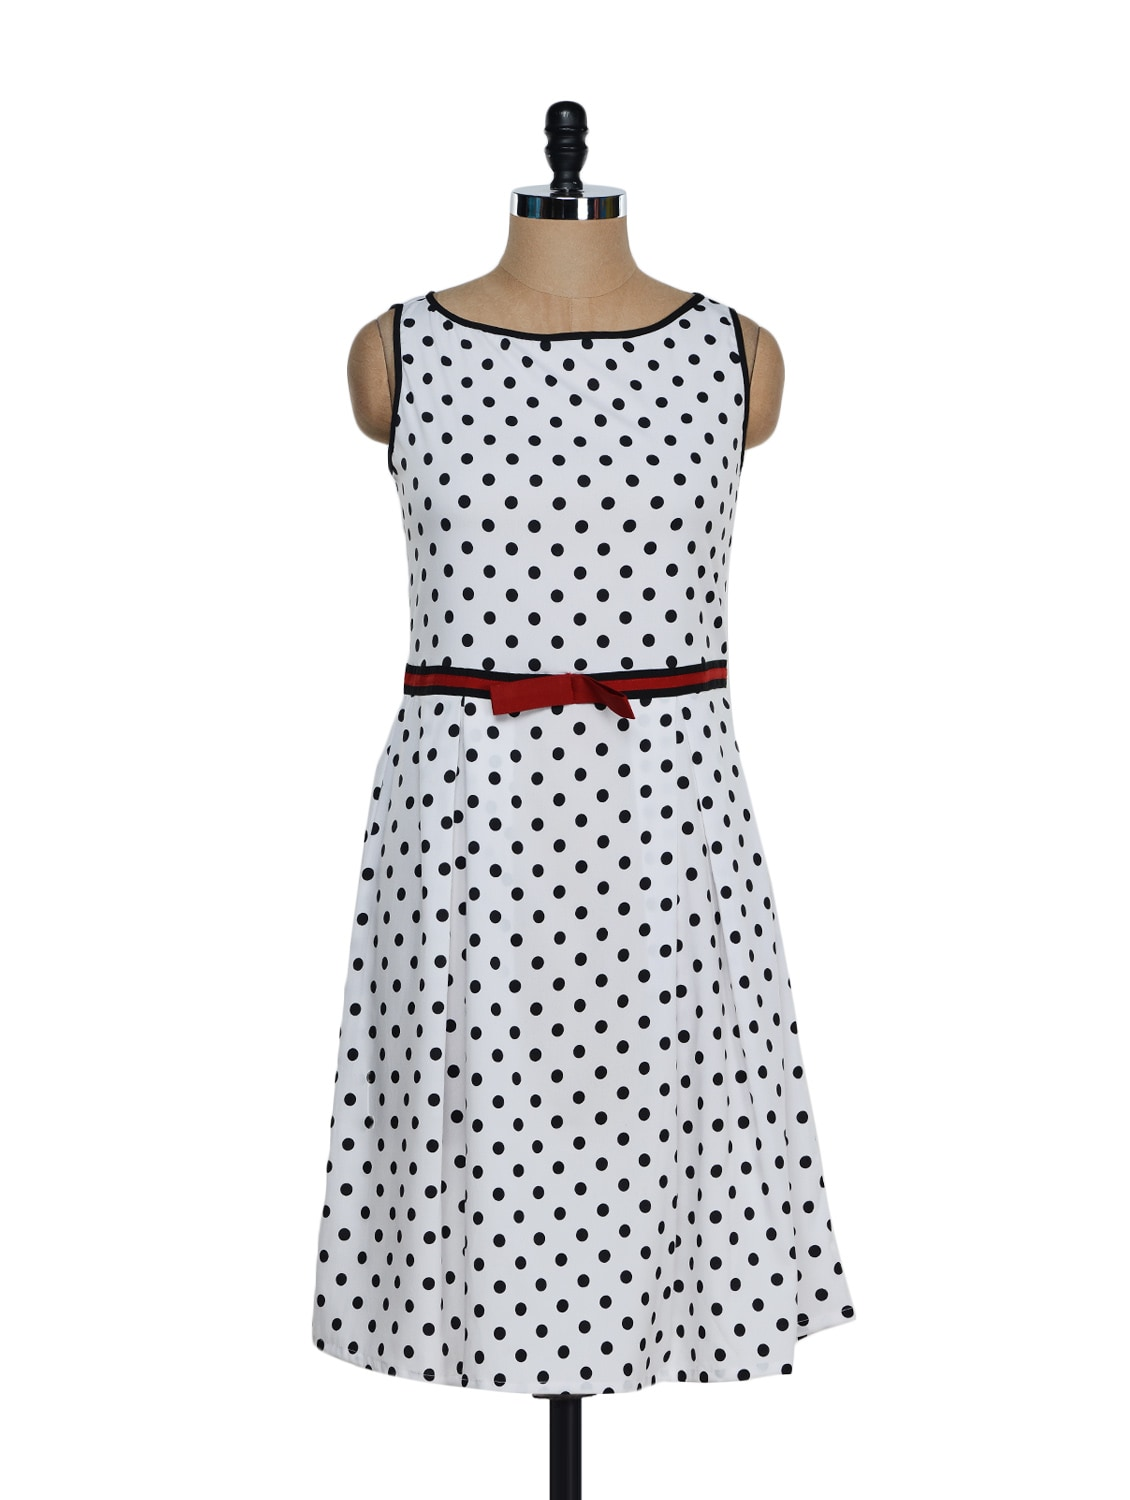 White And Black Polka Dot Dress - Eavan